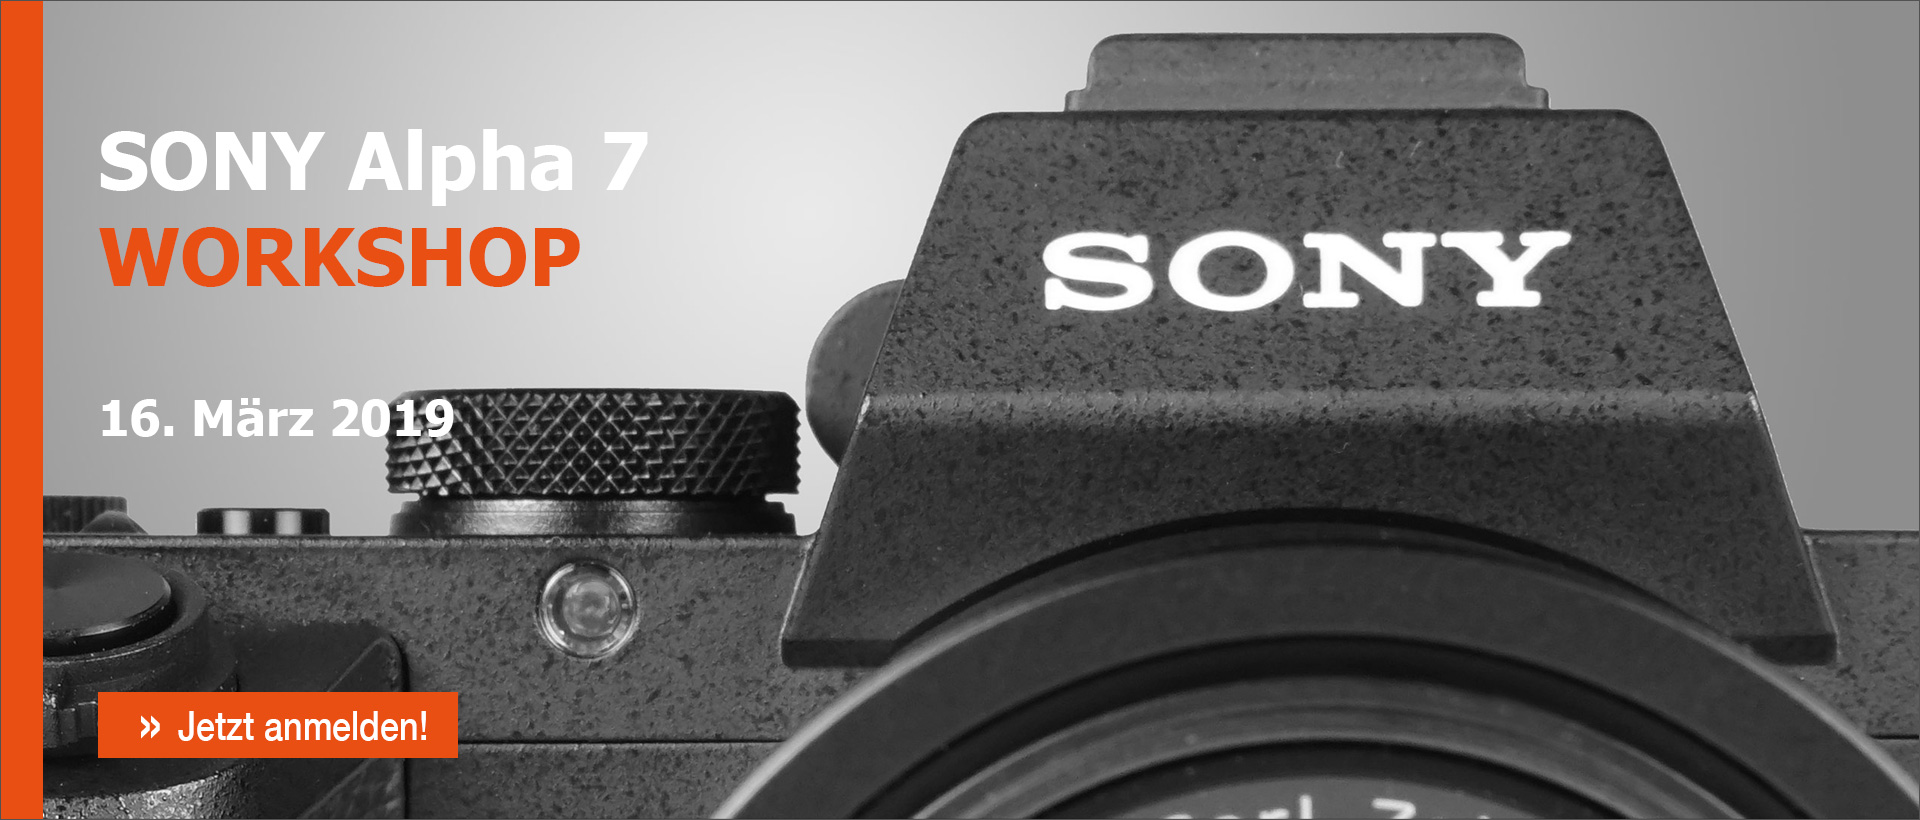 Sony Alpha 7 Workshop